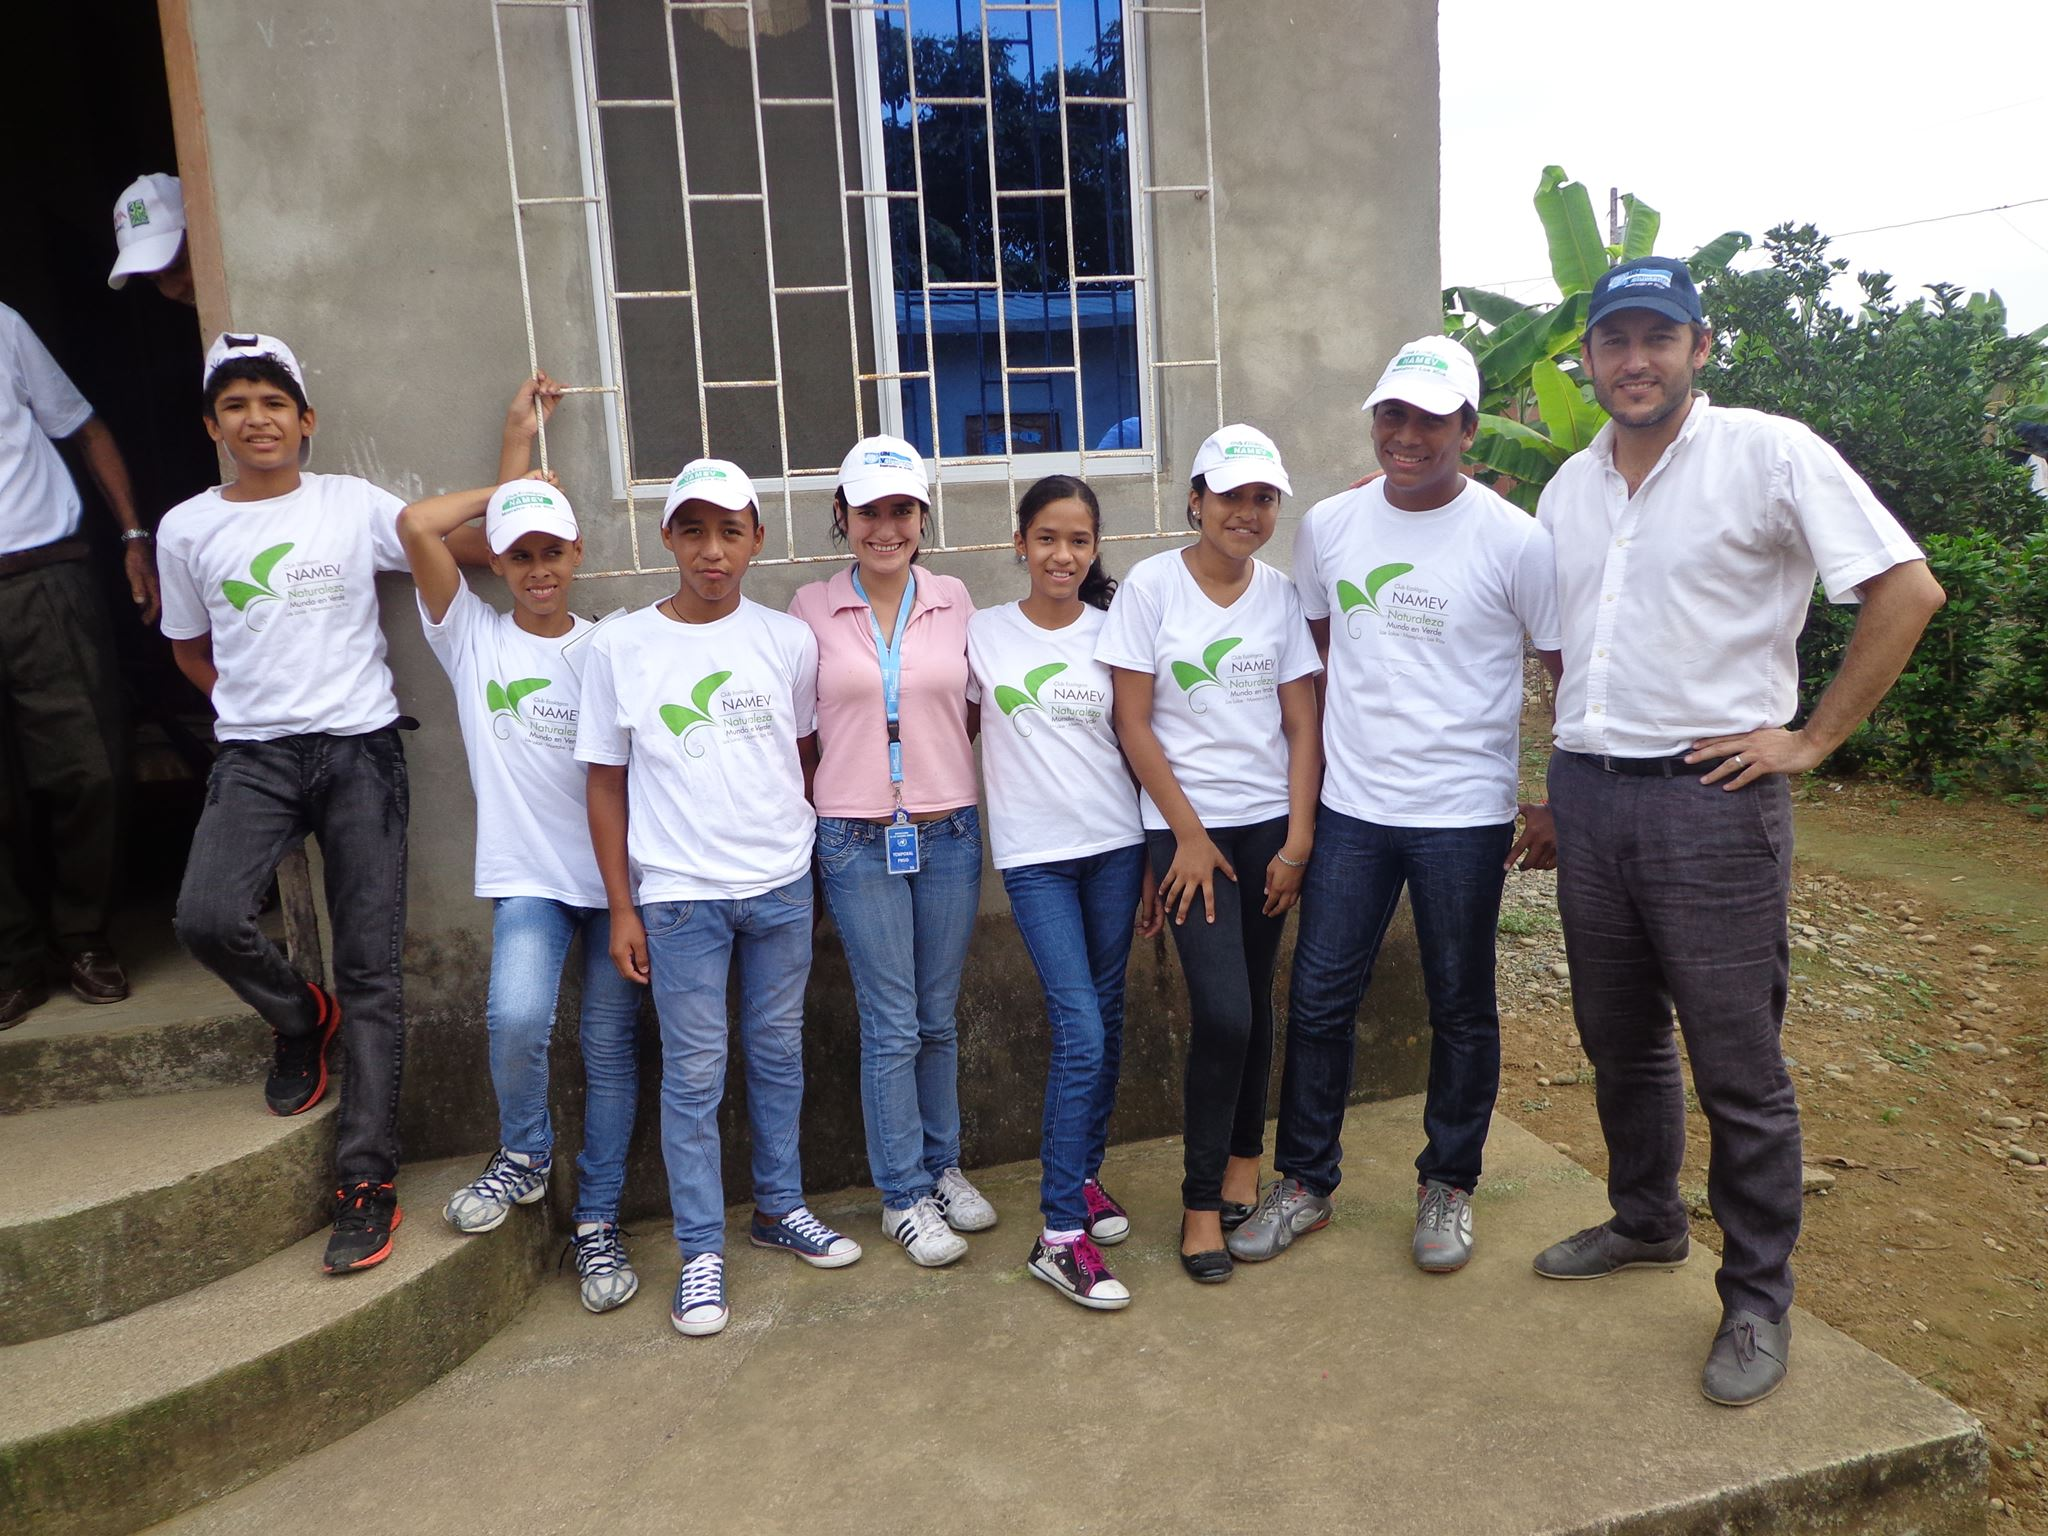 Youth clubs in Ecuador